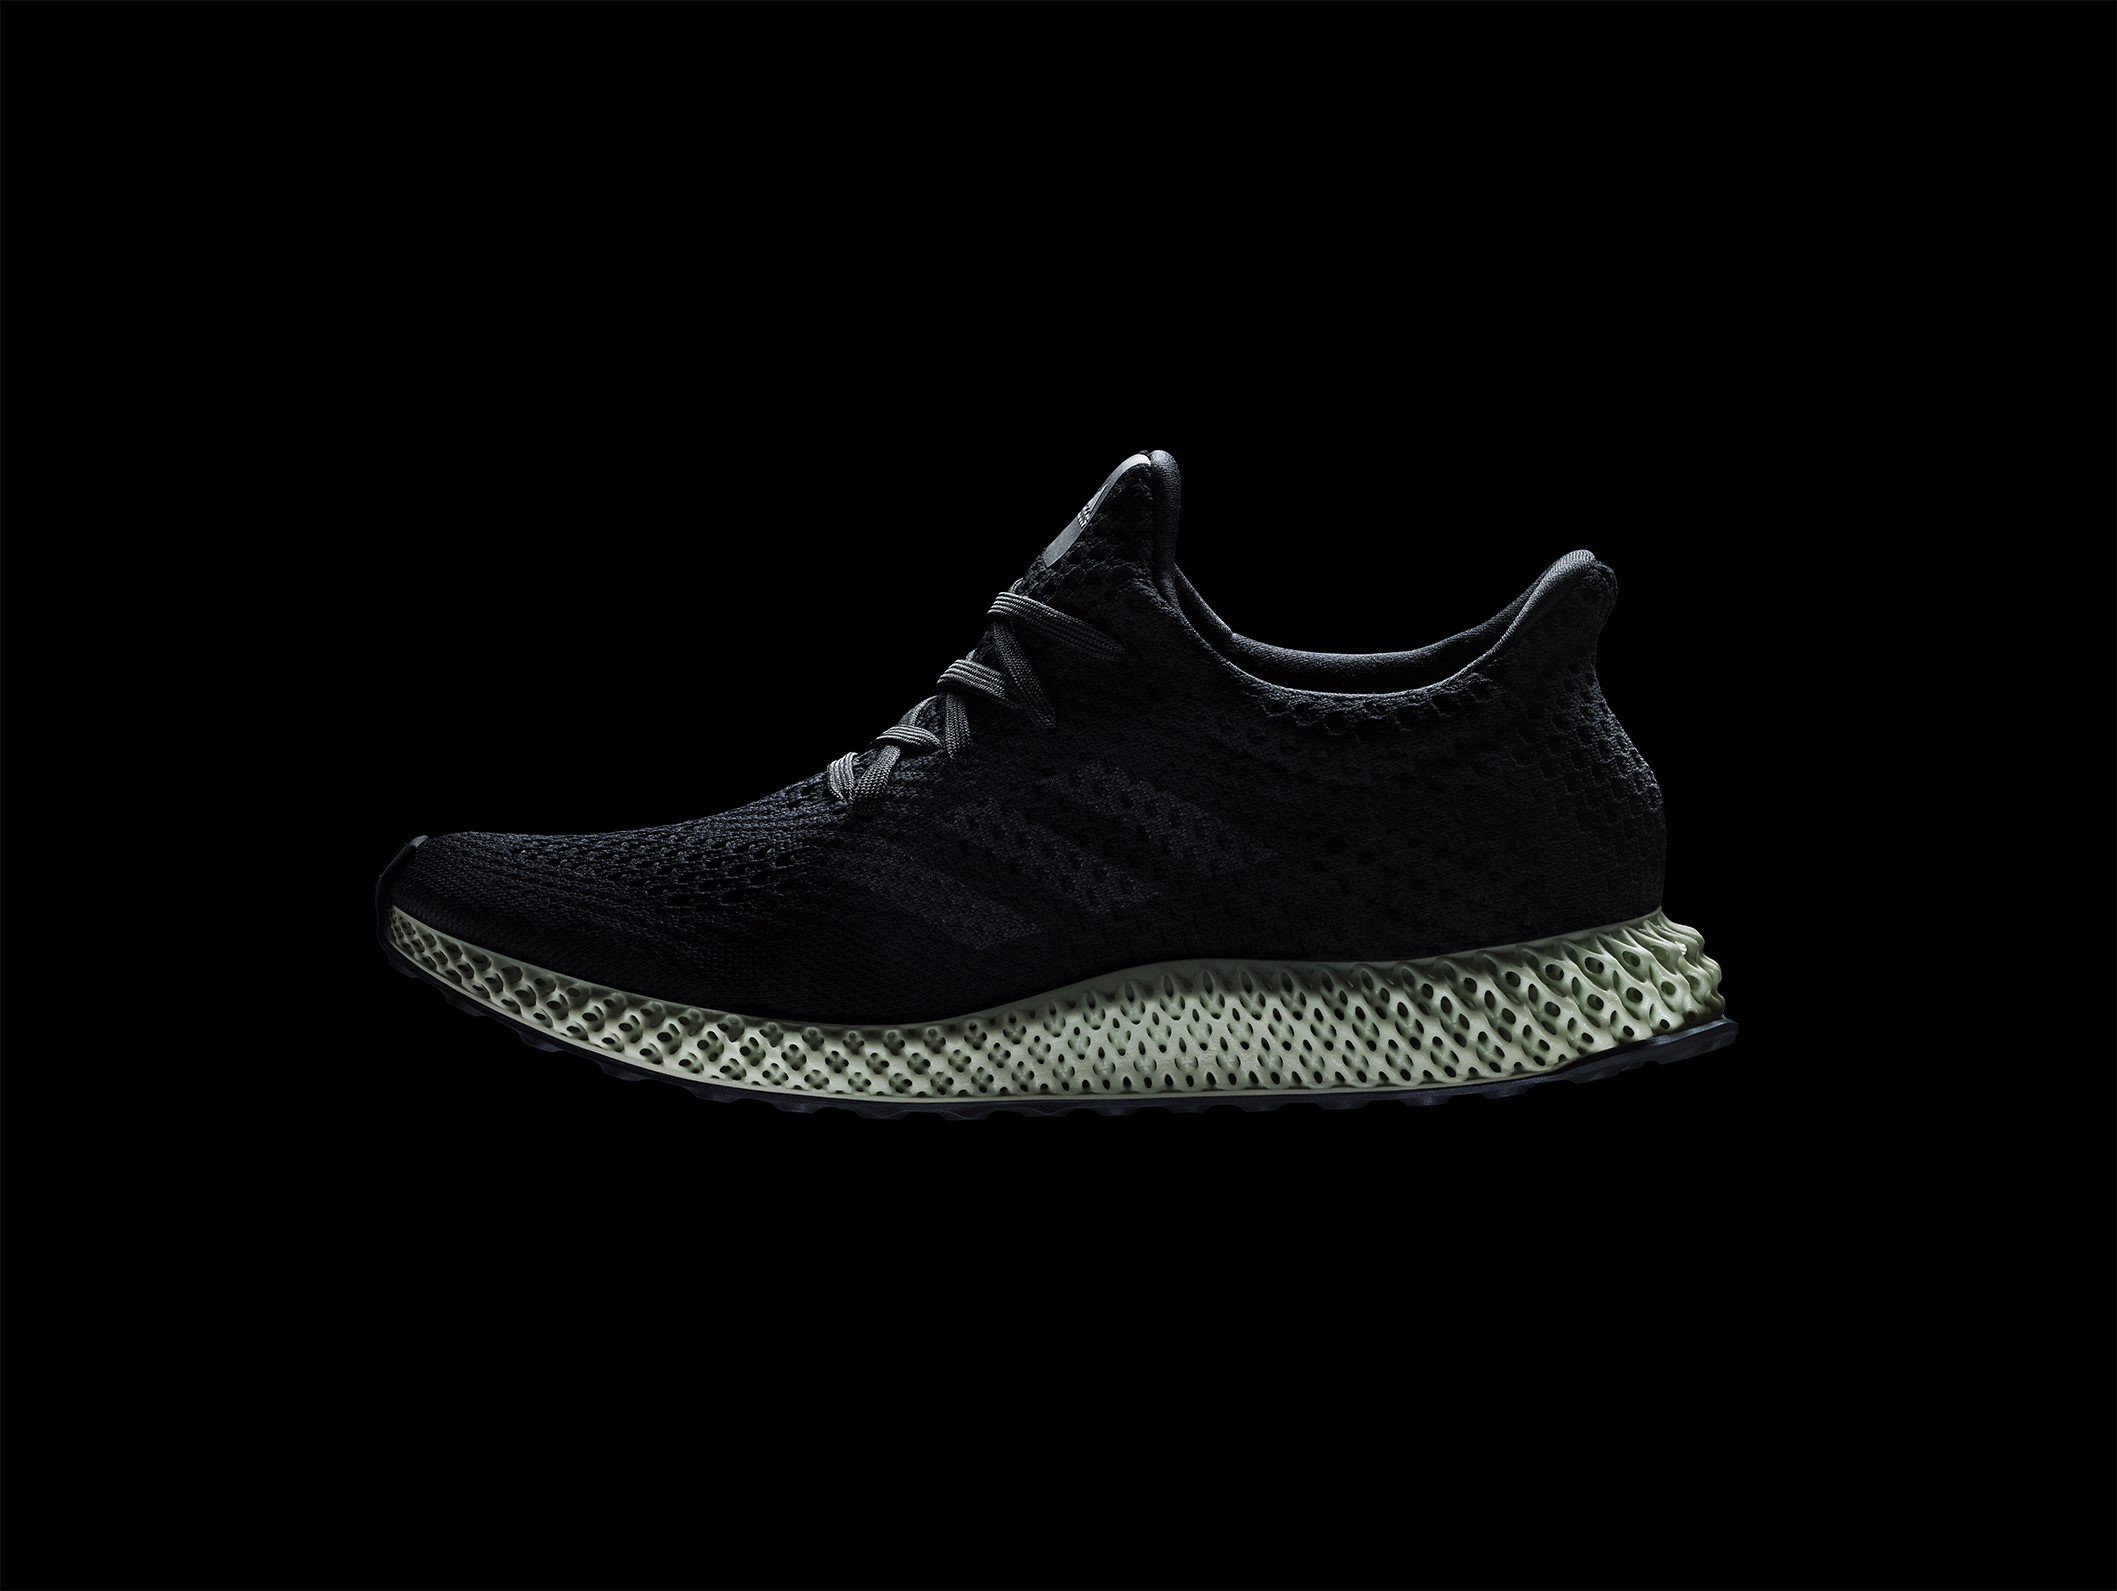 FUTURECRAFT4D_PRODUCT_HERO_BLACK. Adidas unveiled their latest 3D-printed  shoe ...